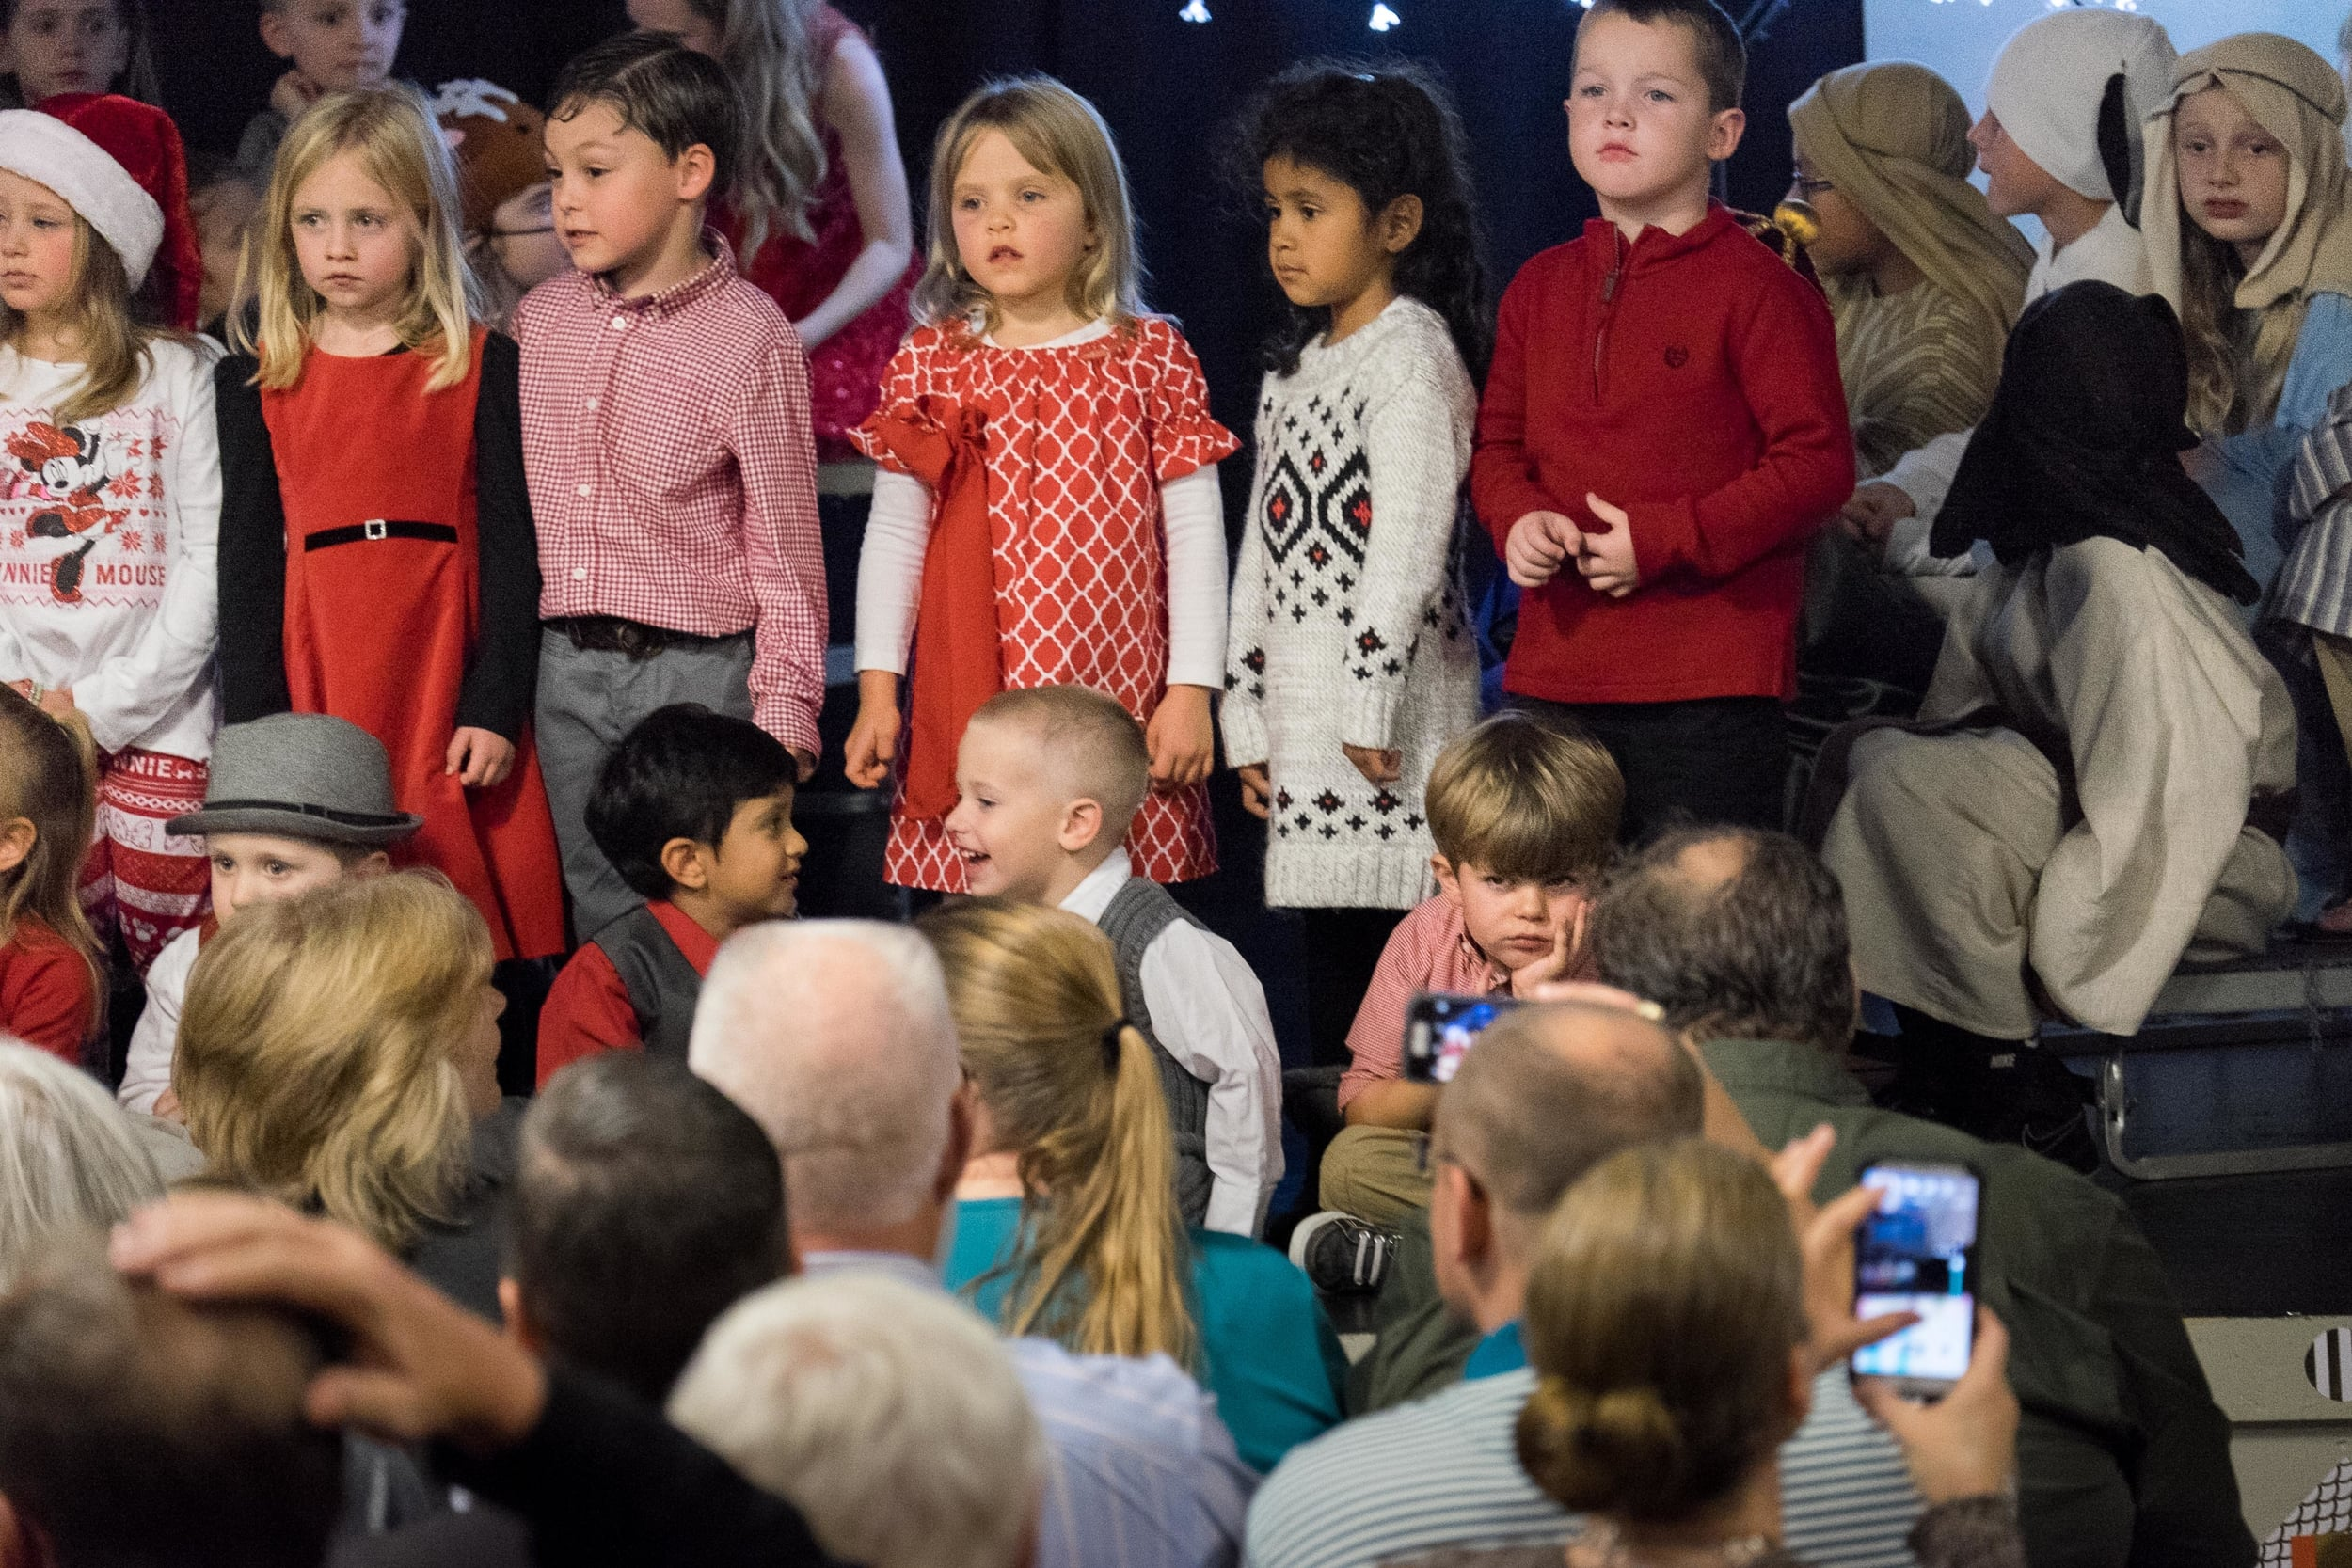 This year, our family members who missed out on attending the Christmas program at Henry's school didn't miss too much. His expression stayed pretty consistently sour throughout the performance.